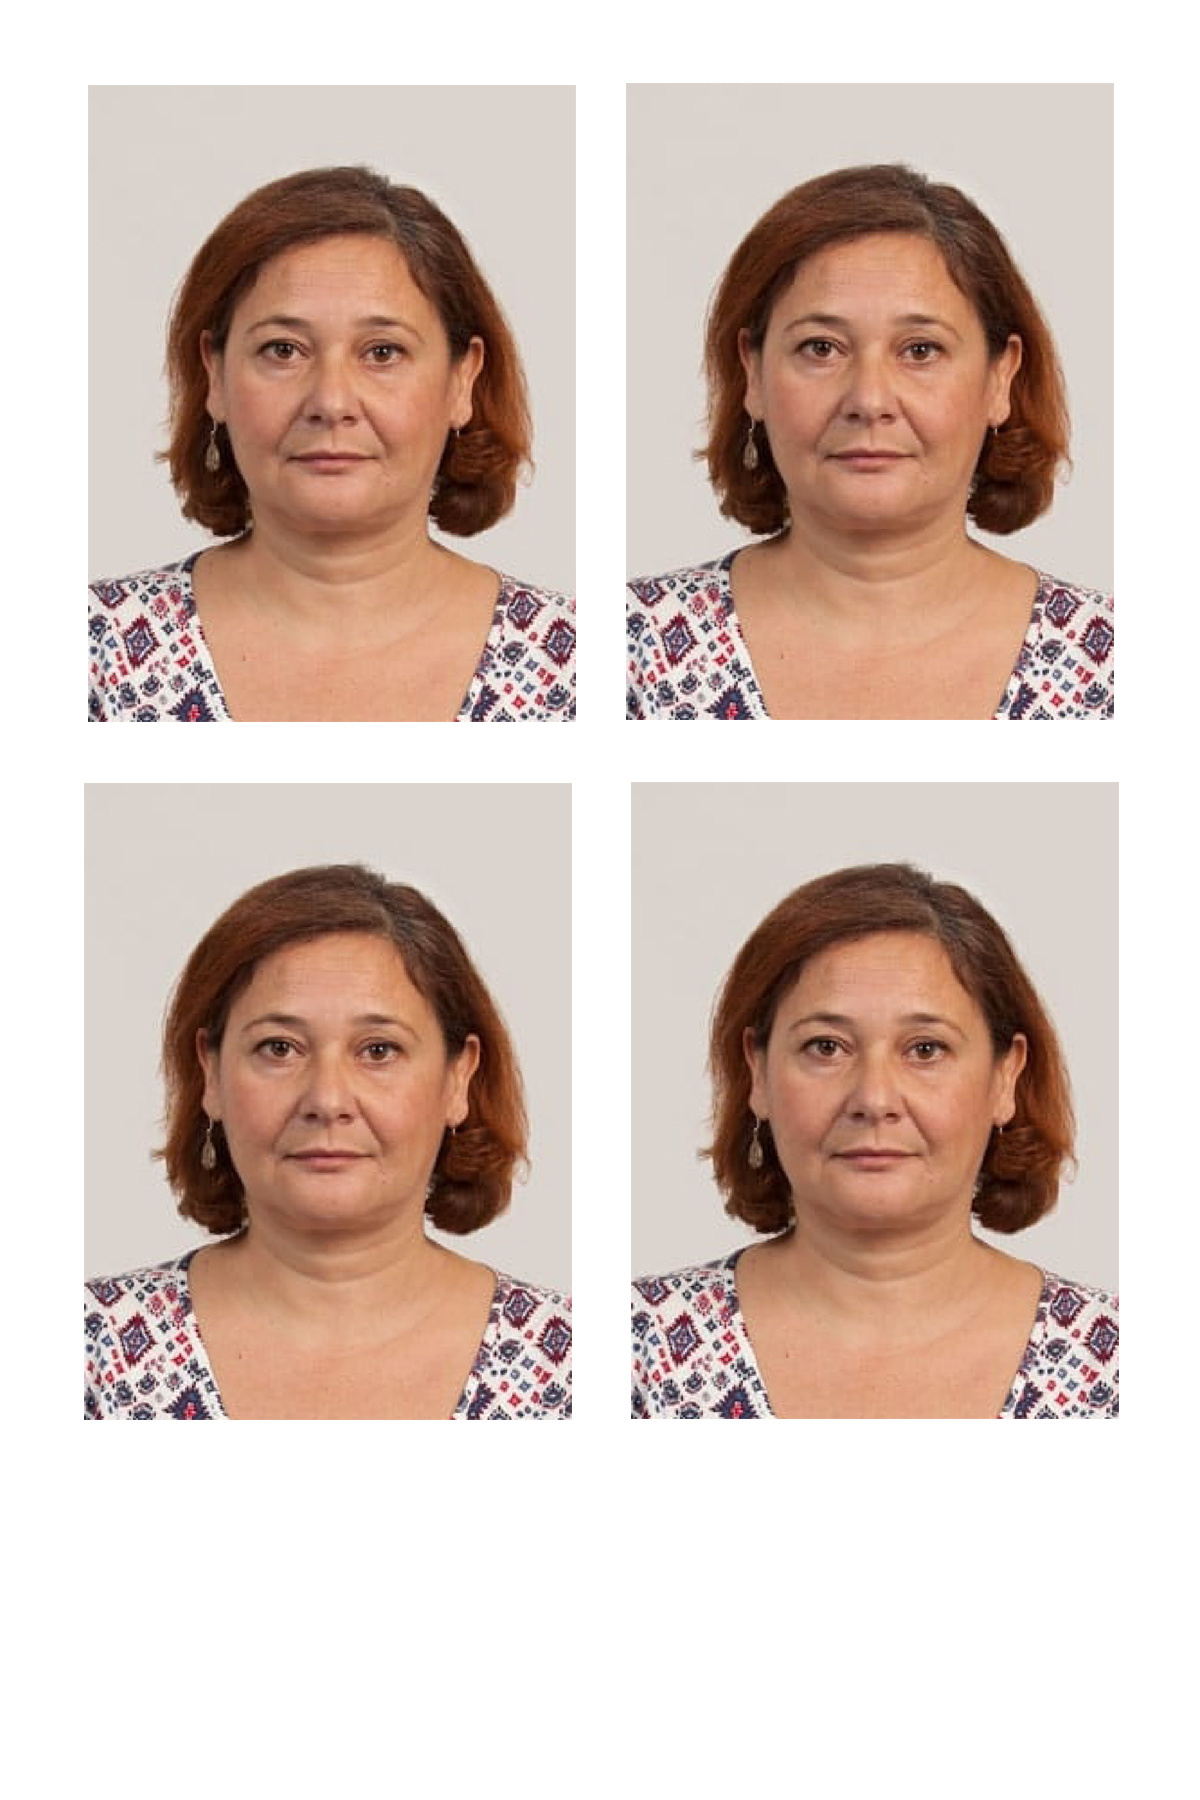 Passport pictures by John Woods Photography in Huddersfield